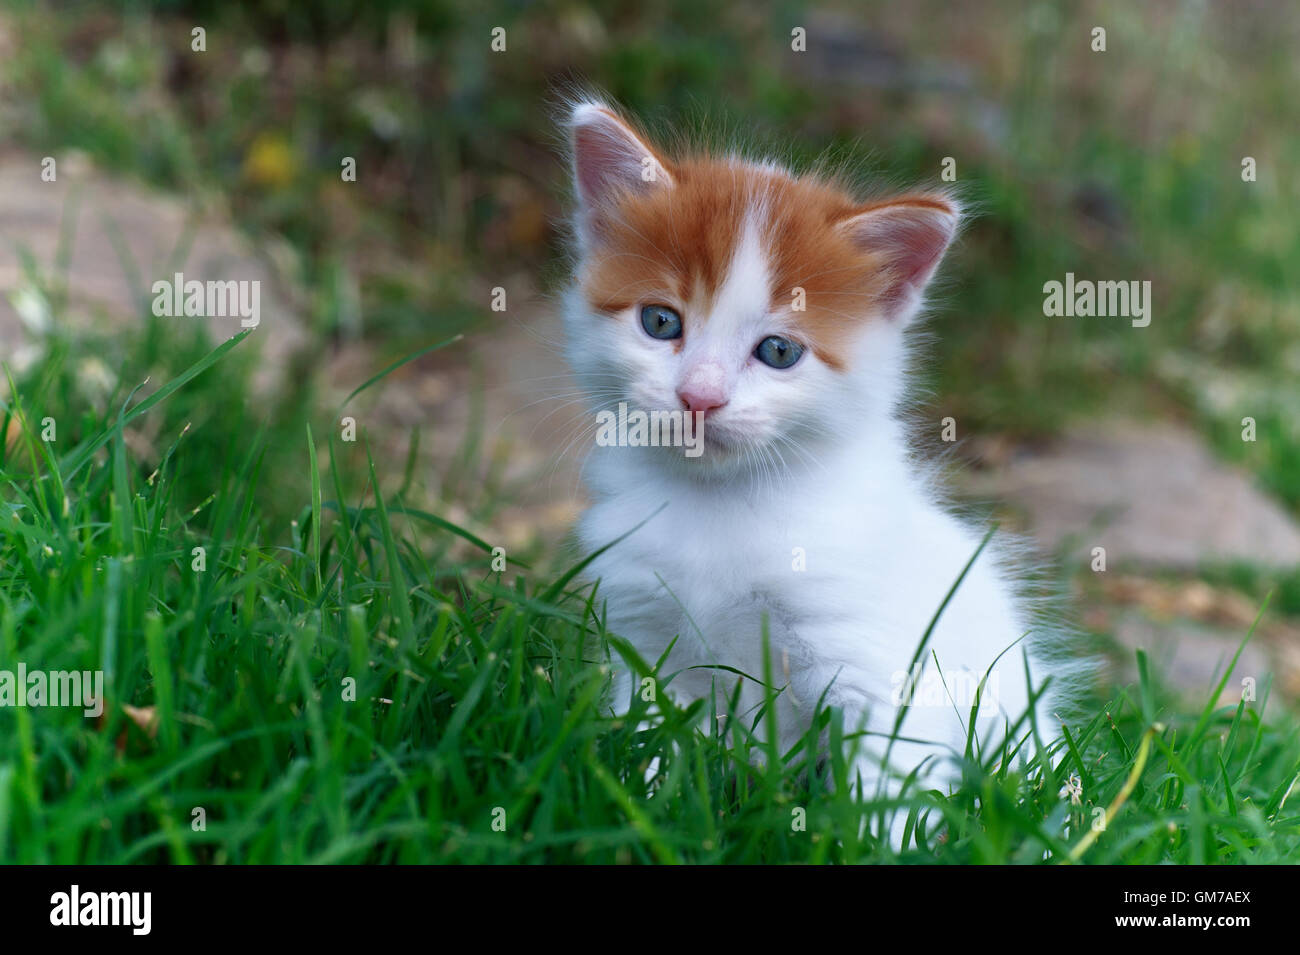 Five weeks old kitten sitting in grass - Stock Image